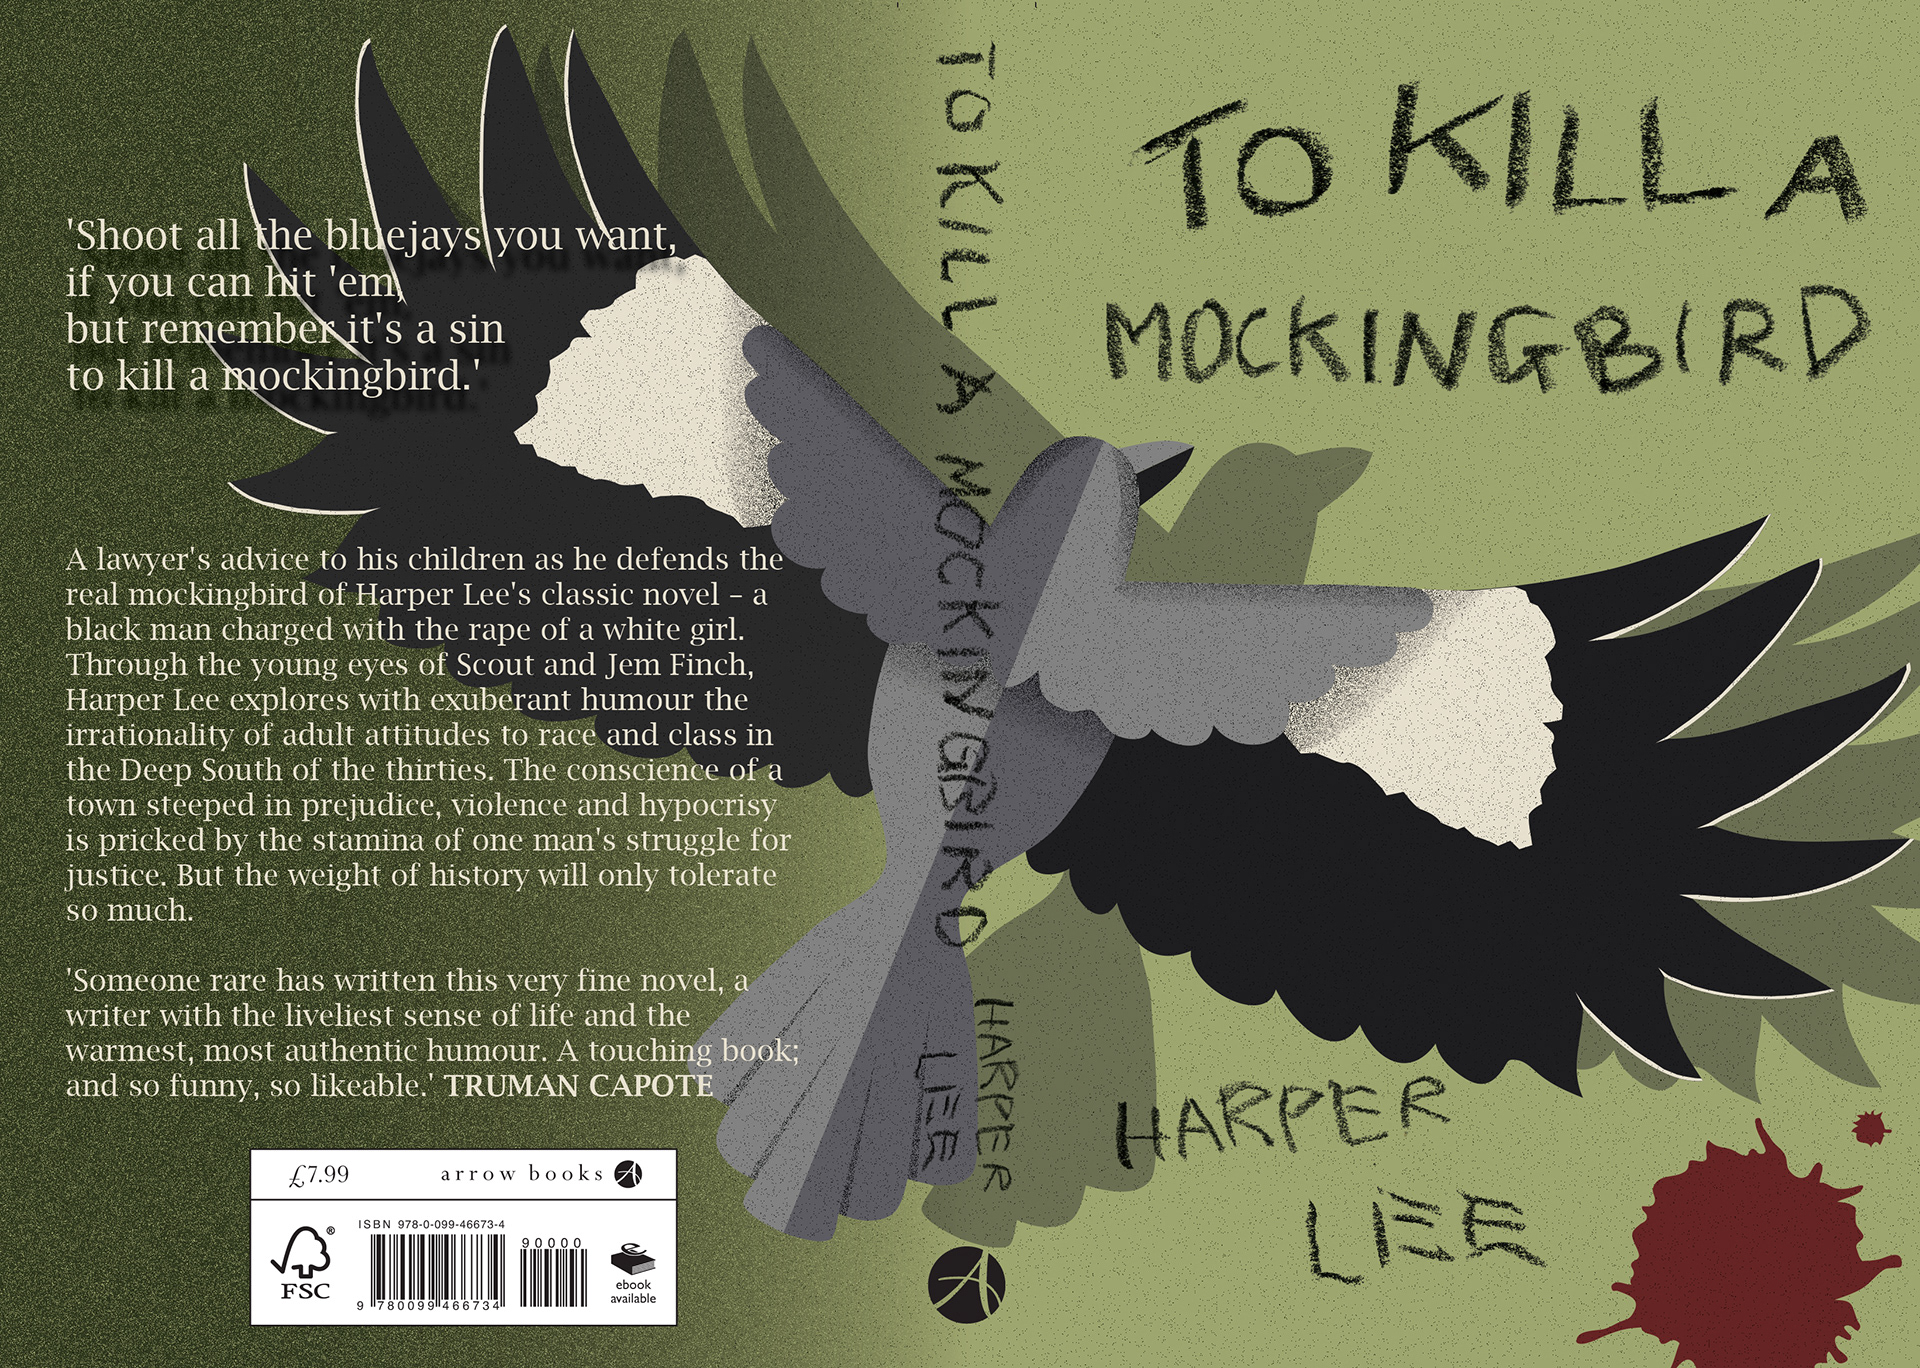 the kinds of heroism shown in the novel to kill a mockingbird The novel, to kill a mockingbird, published in 1960 has remained one of the most enormously popular novels of harper lee the novel is about jean louis finch whose screen name is scout describing the events surrounding her father, atticus, and all his team of legal defense that constitute tom robinson who is accused of rape.